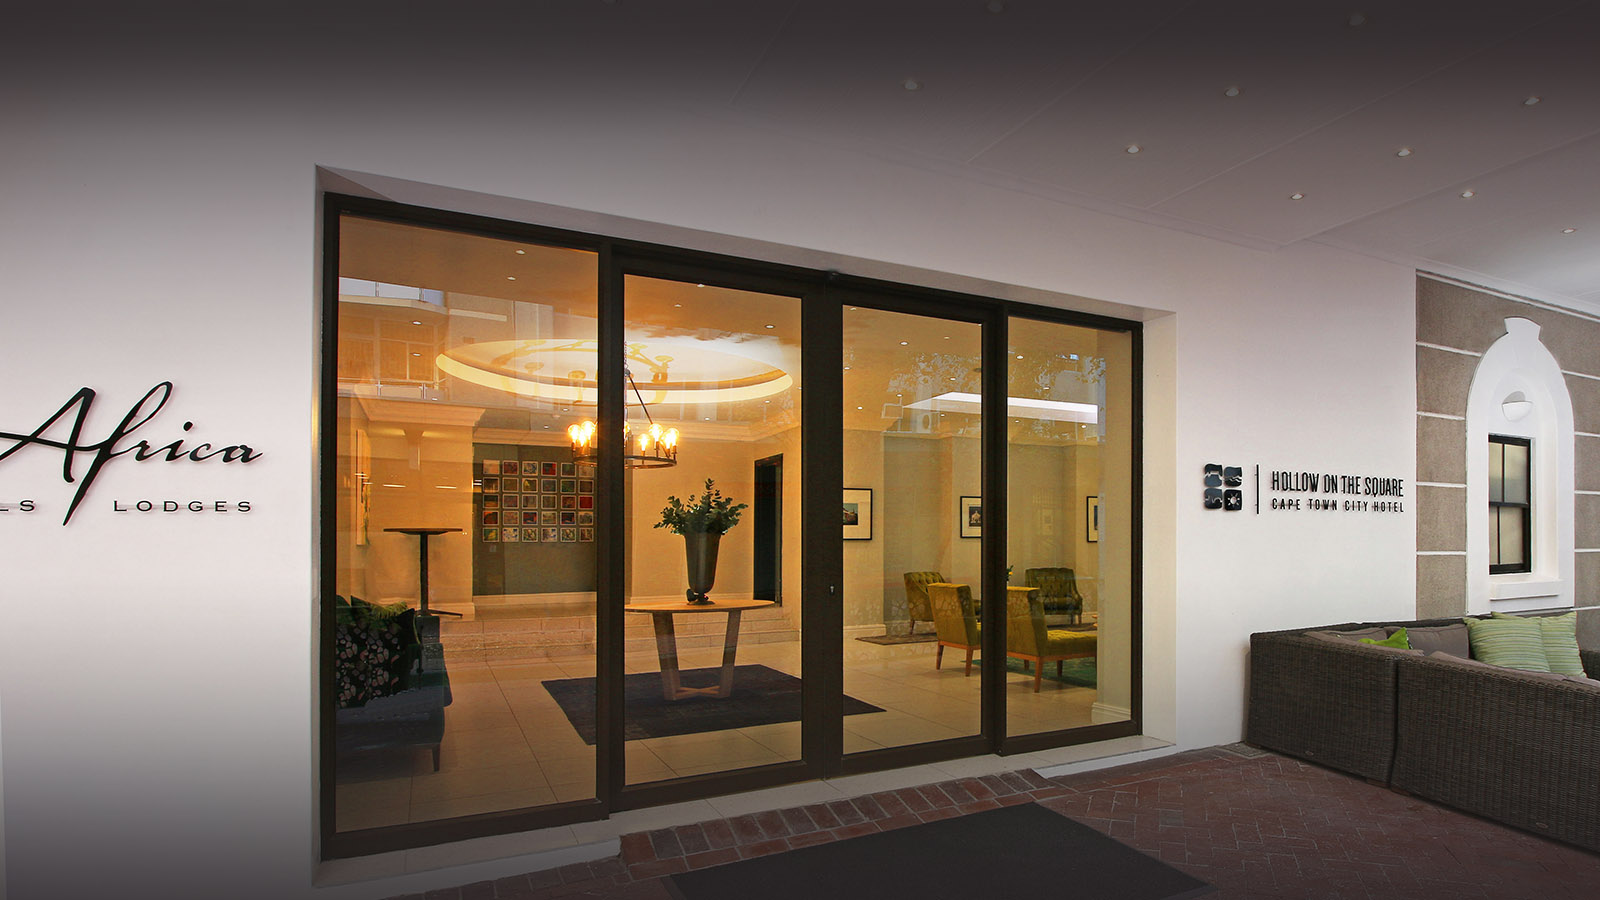 hollow on the square hotel-cape-town-lodges-zambia-in-style-south-africa-family-friendly-stylish-modern-entrance